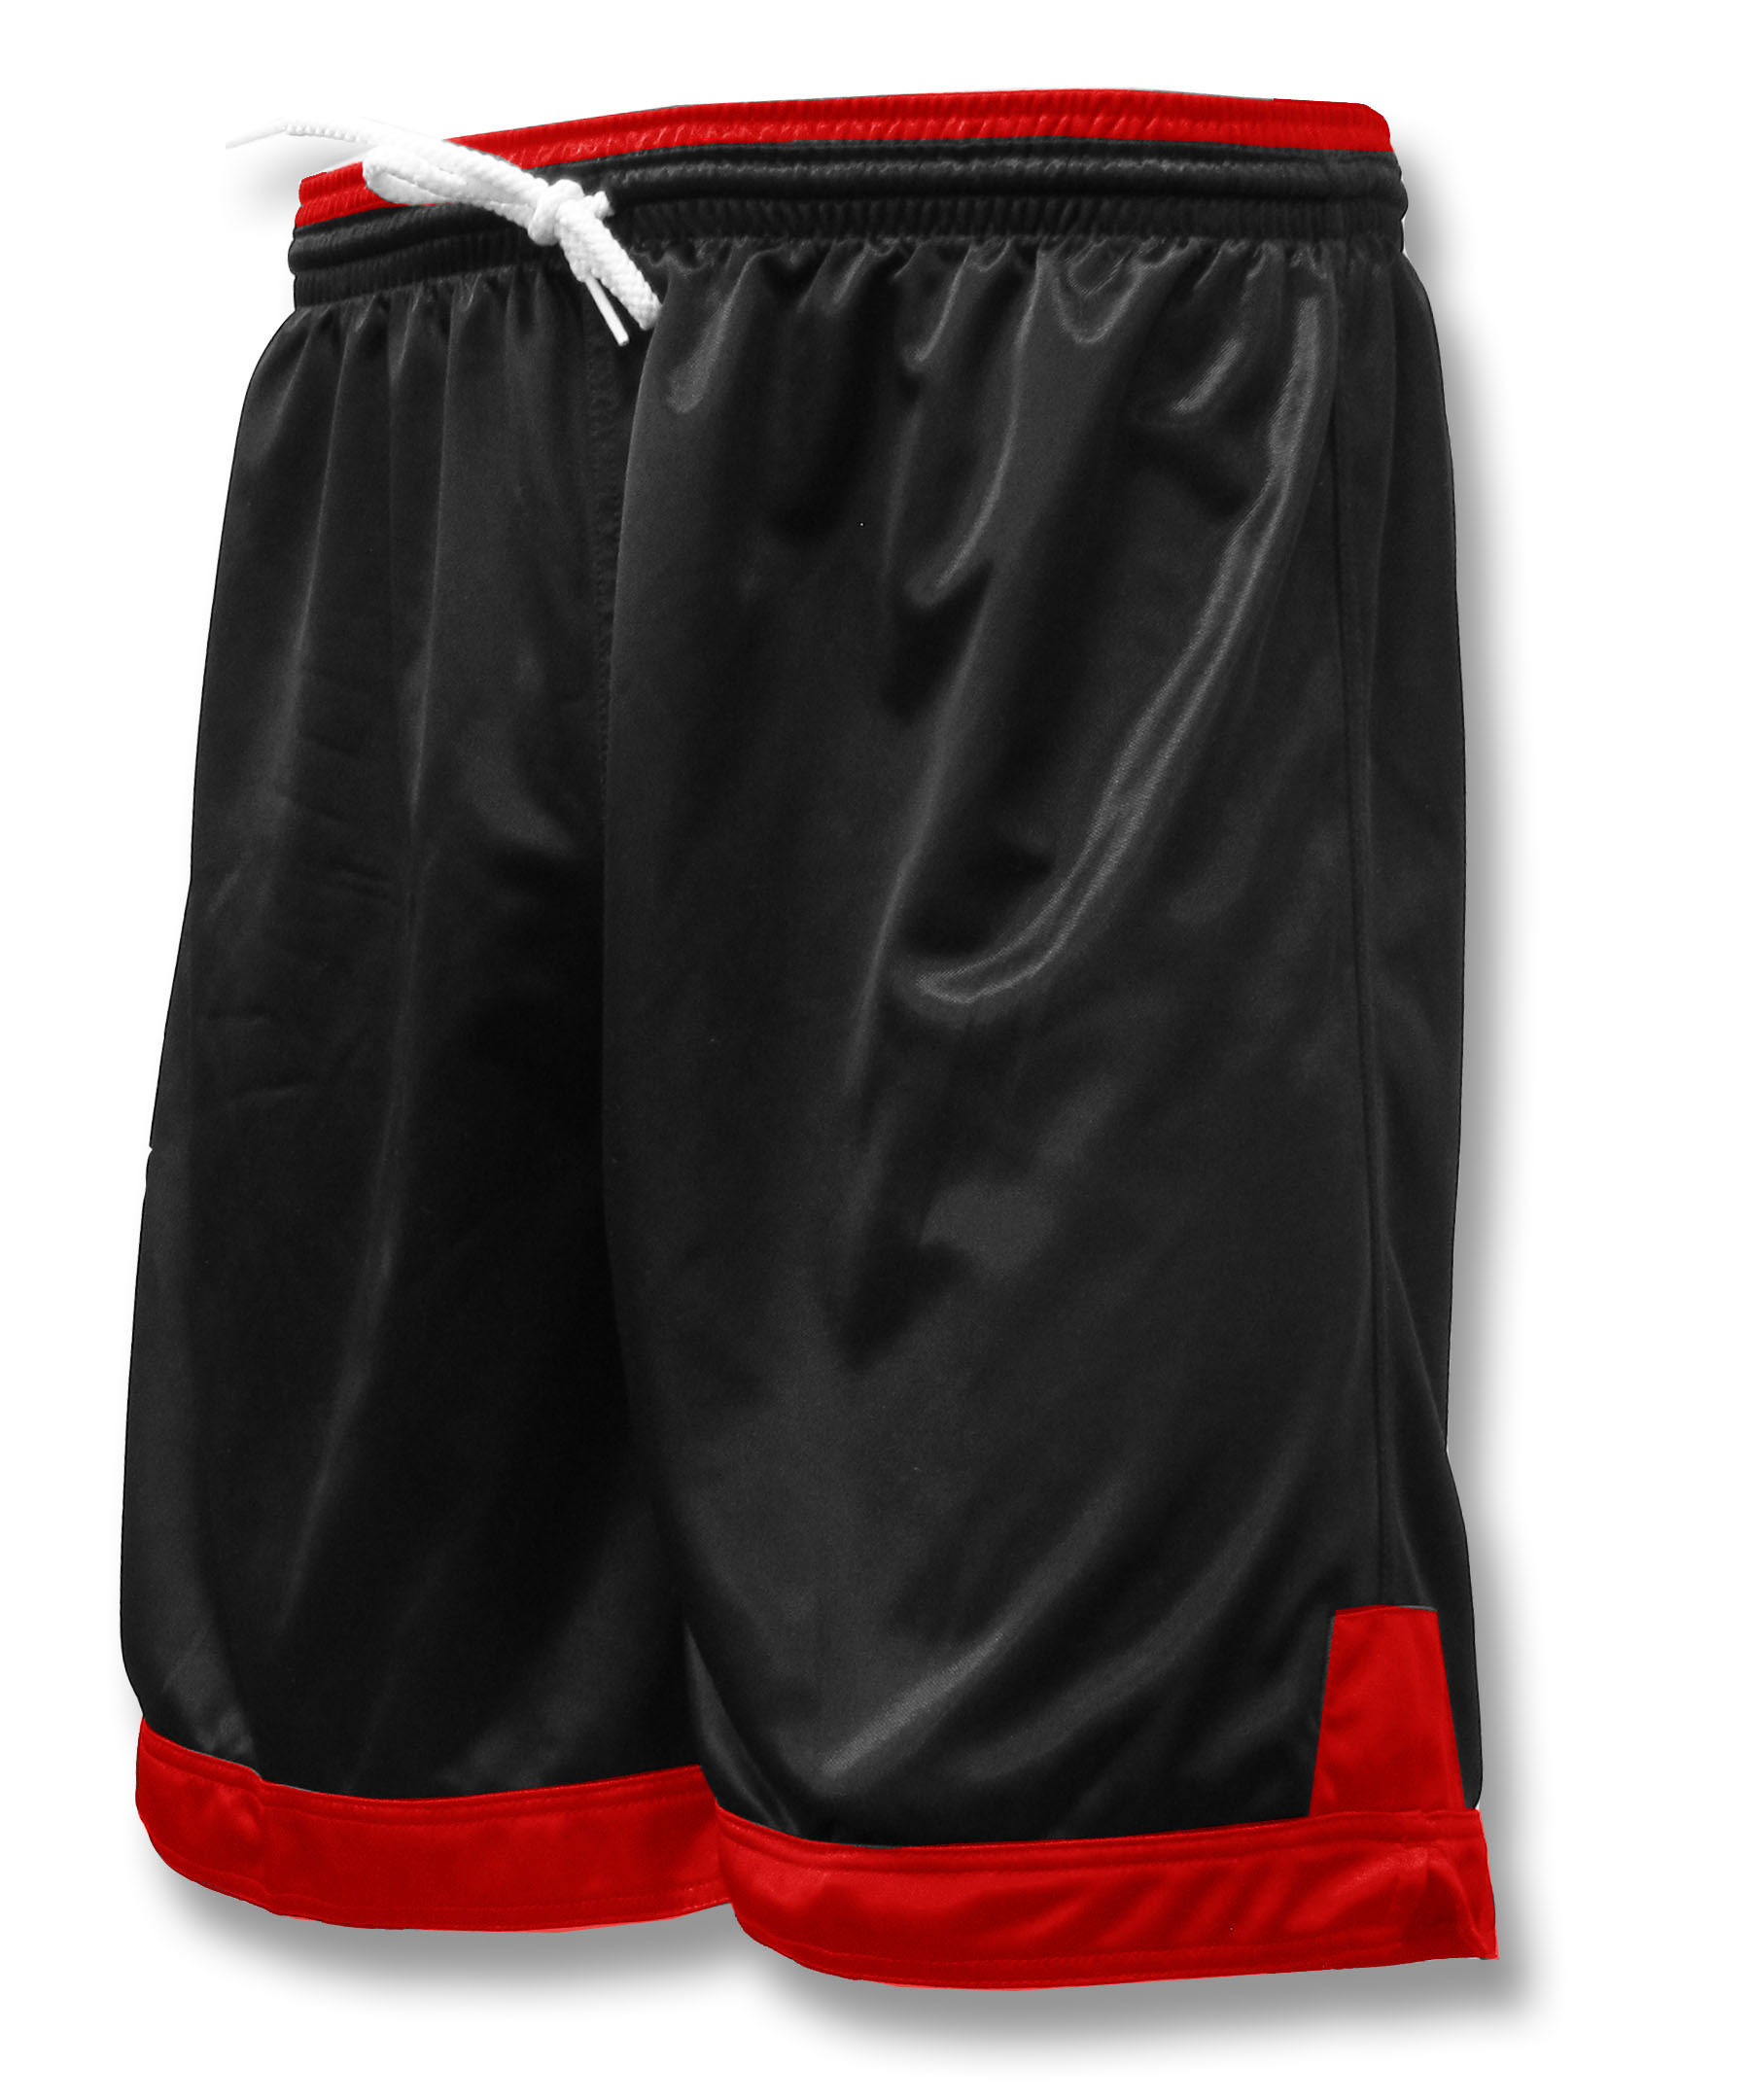 Winchester soccer shorts in black / red by Code Four Athletics